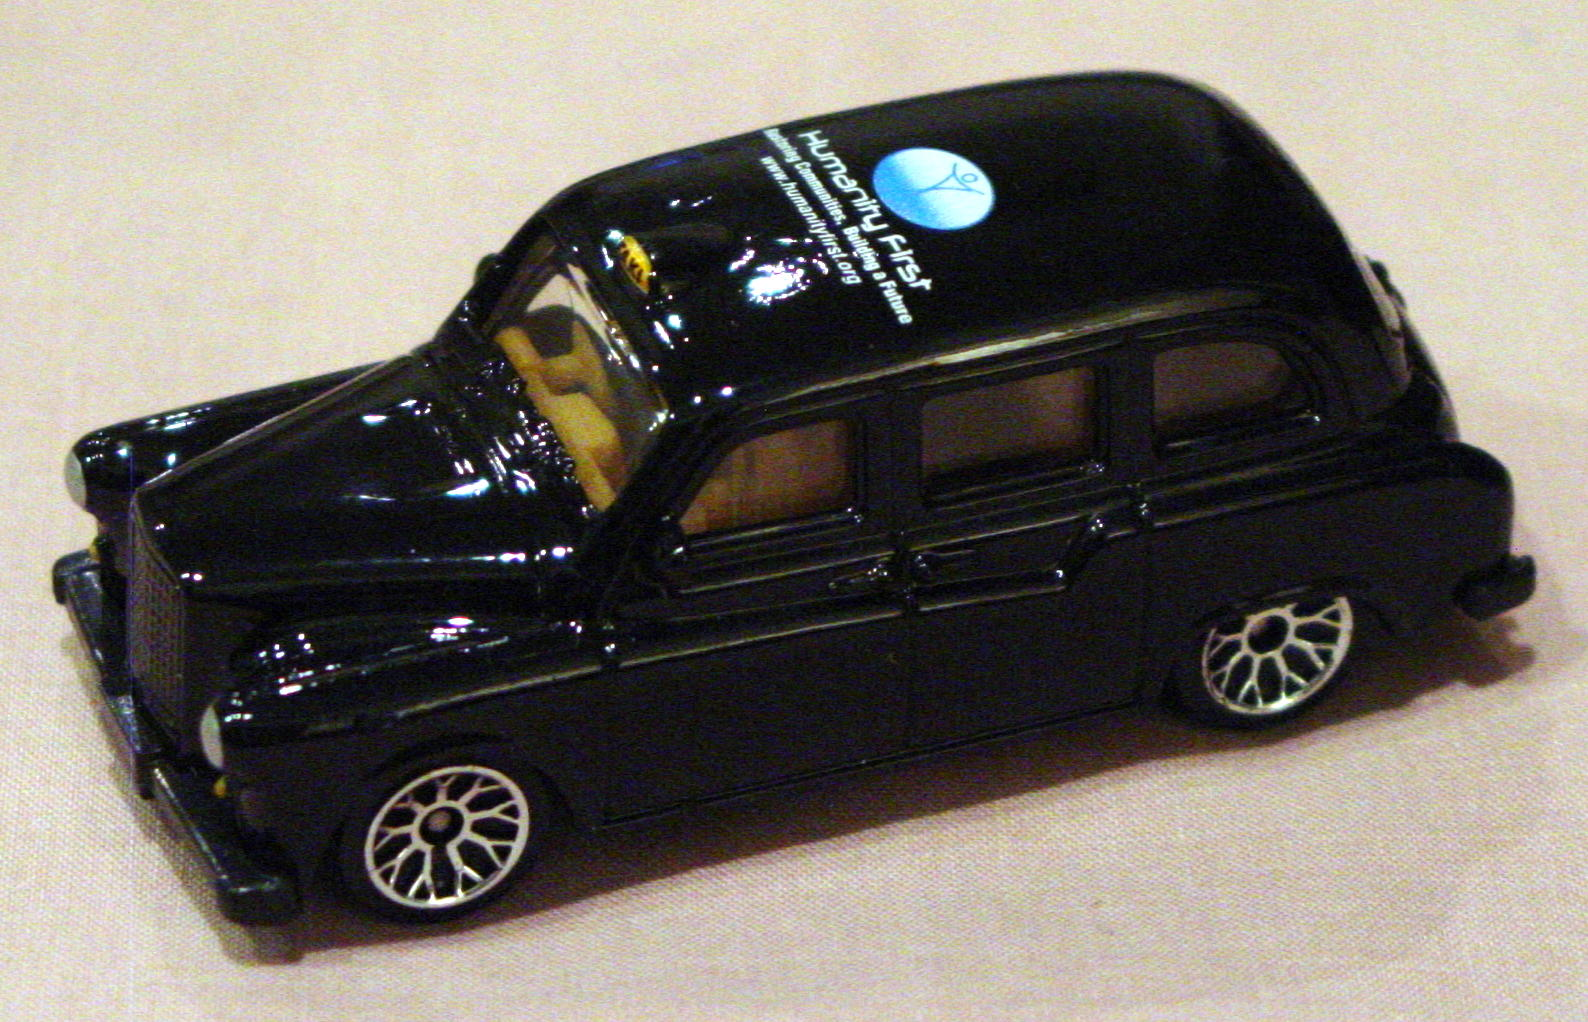 ASAP-CCI 36 - London Taxi Black Humanity First CCI